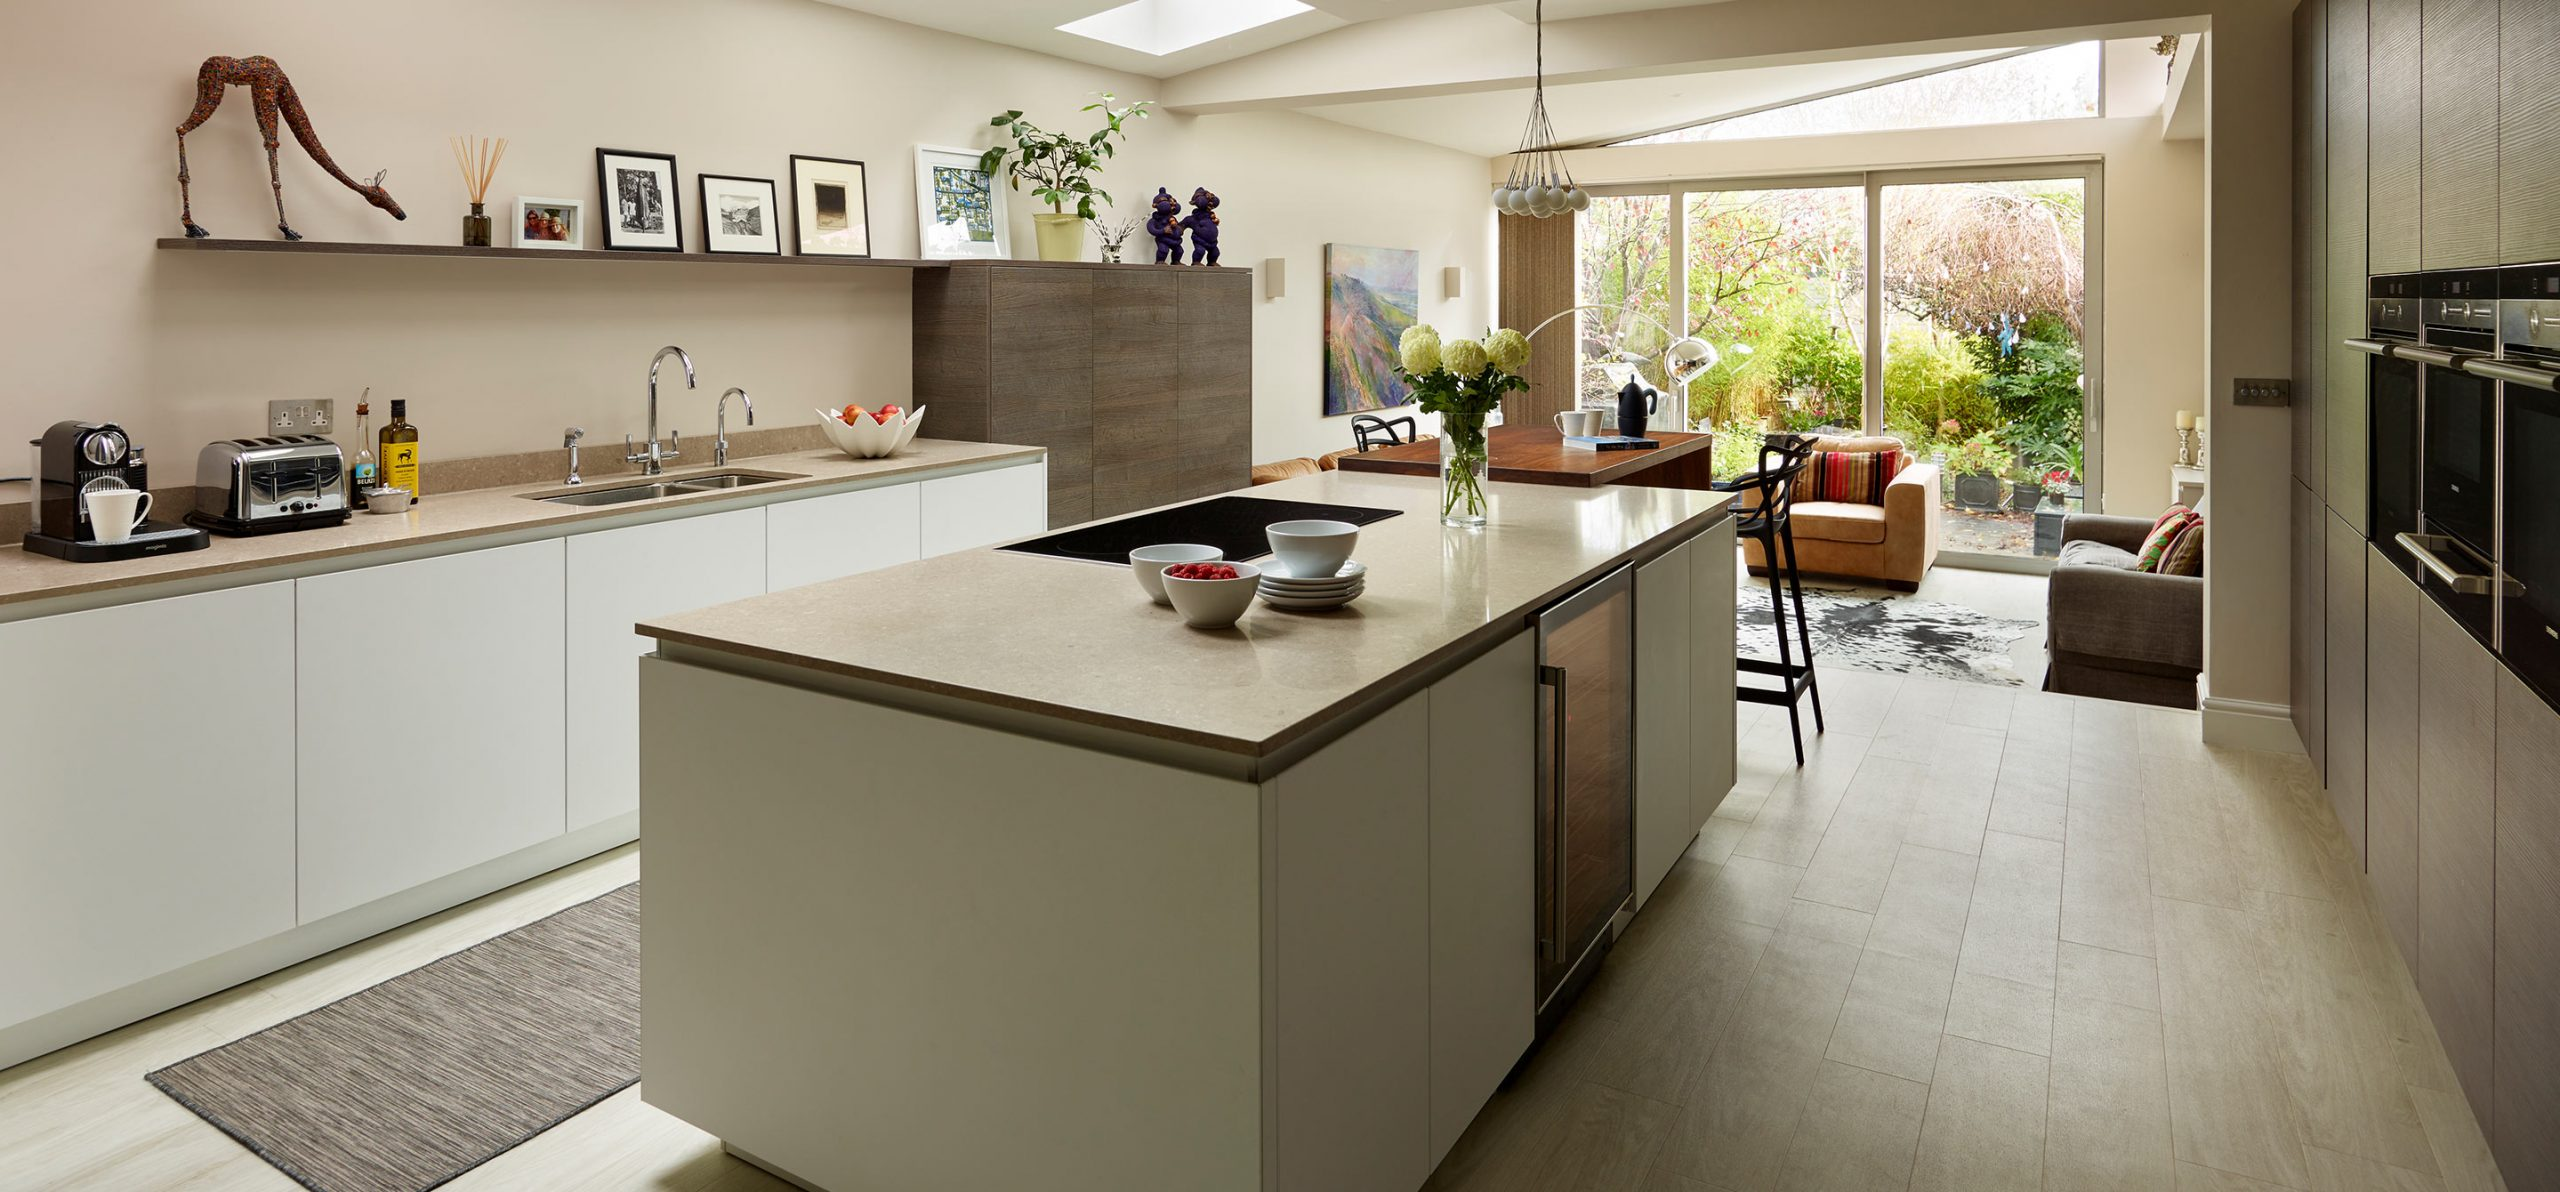 Wide view of modern open plan kitchen in a white base unit finish with light brown porcelain worktops and living space